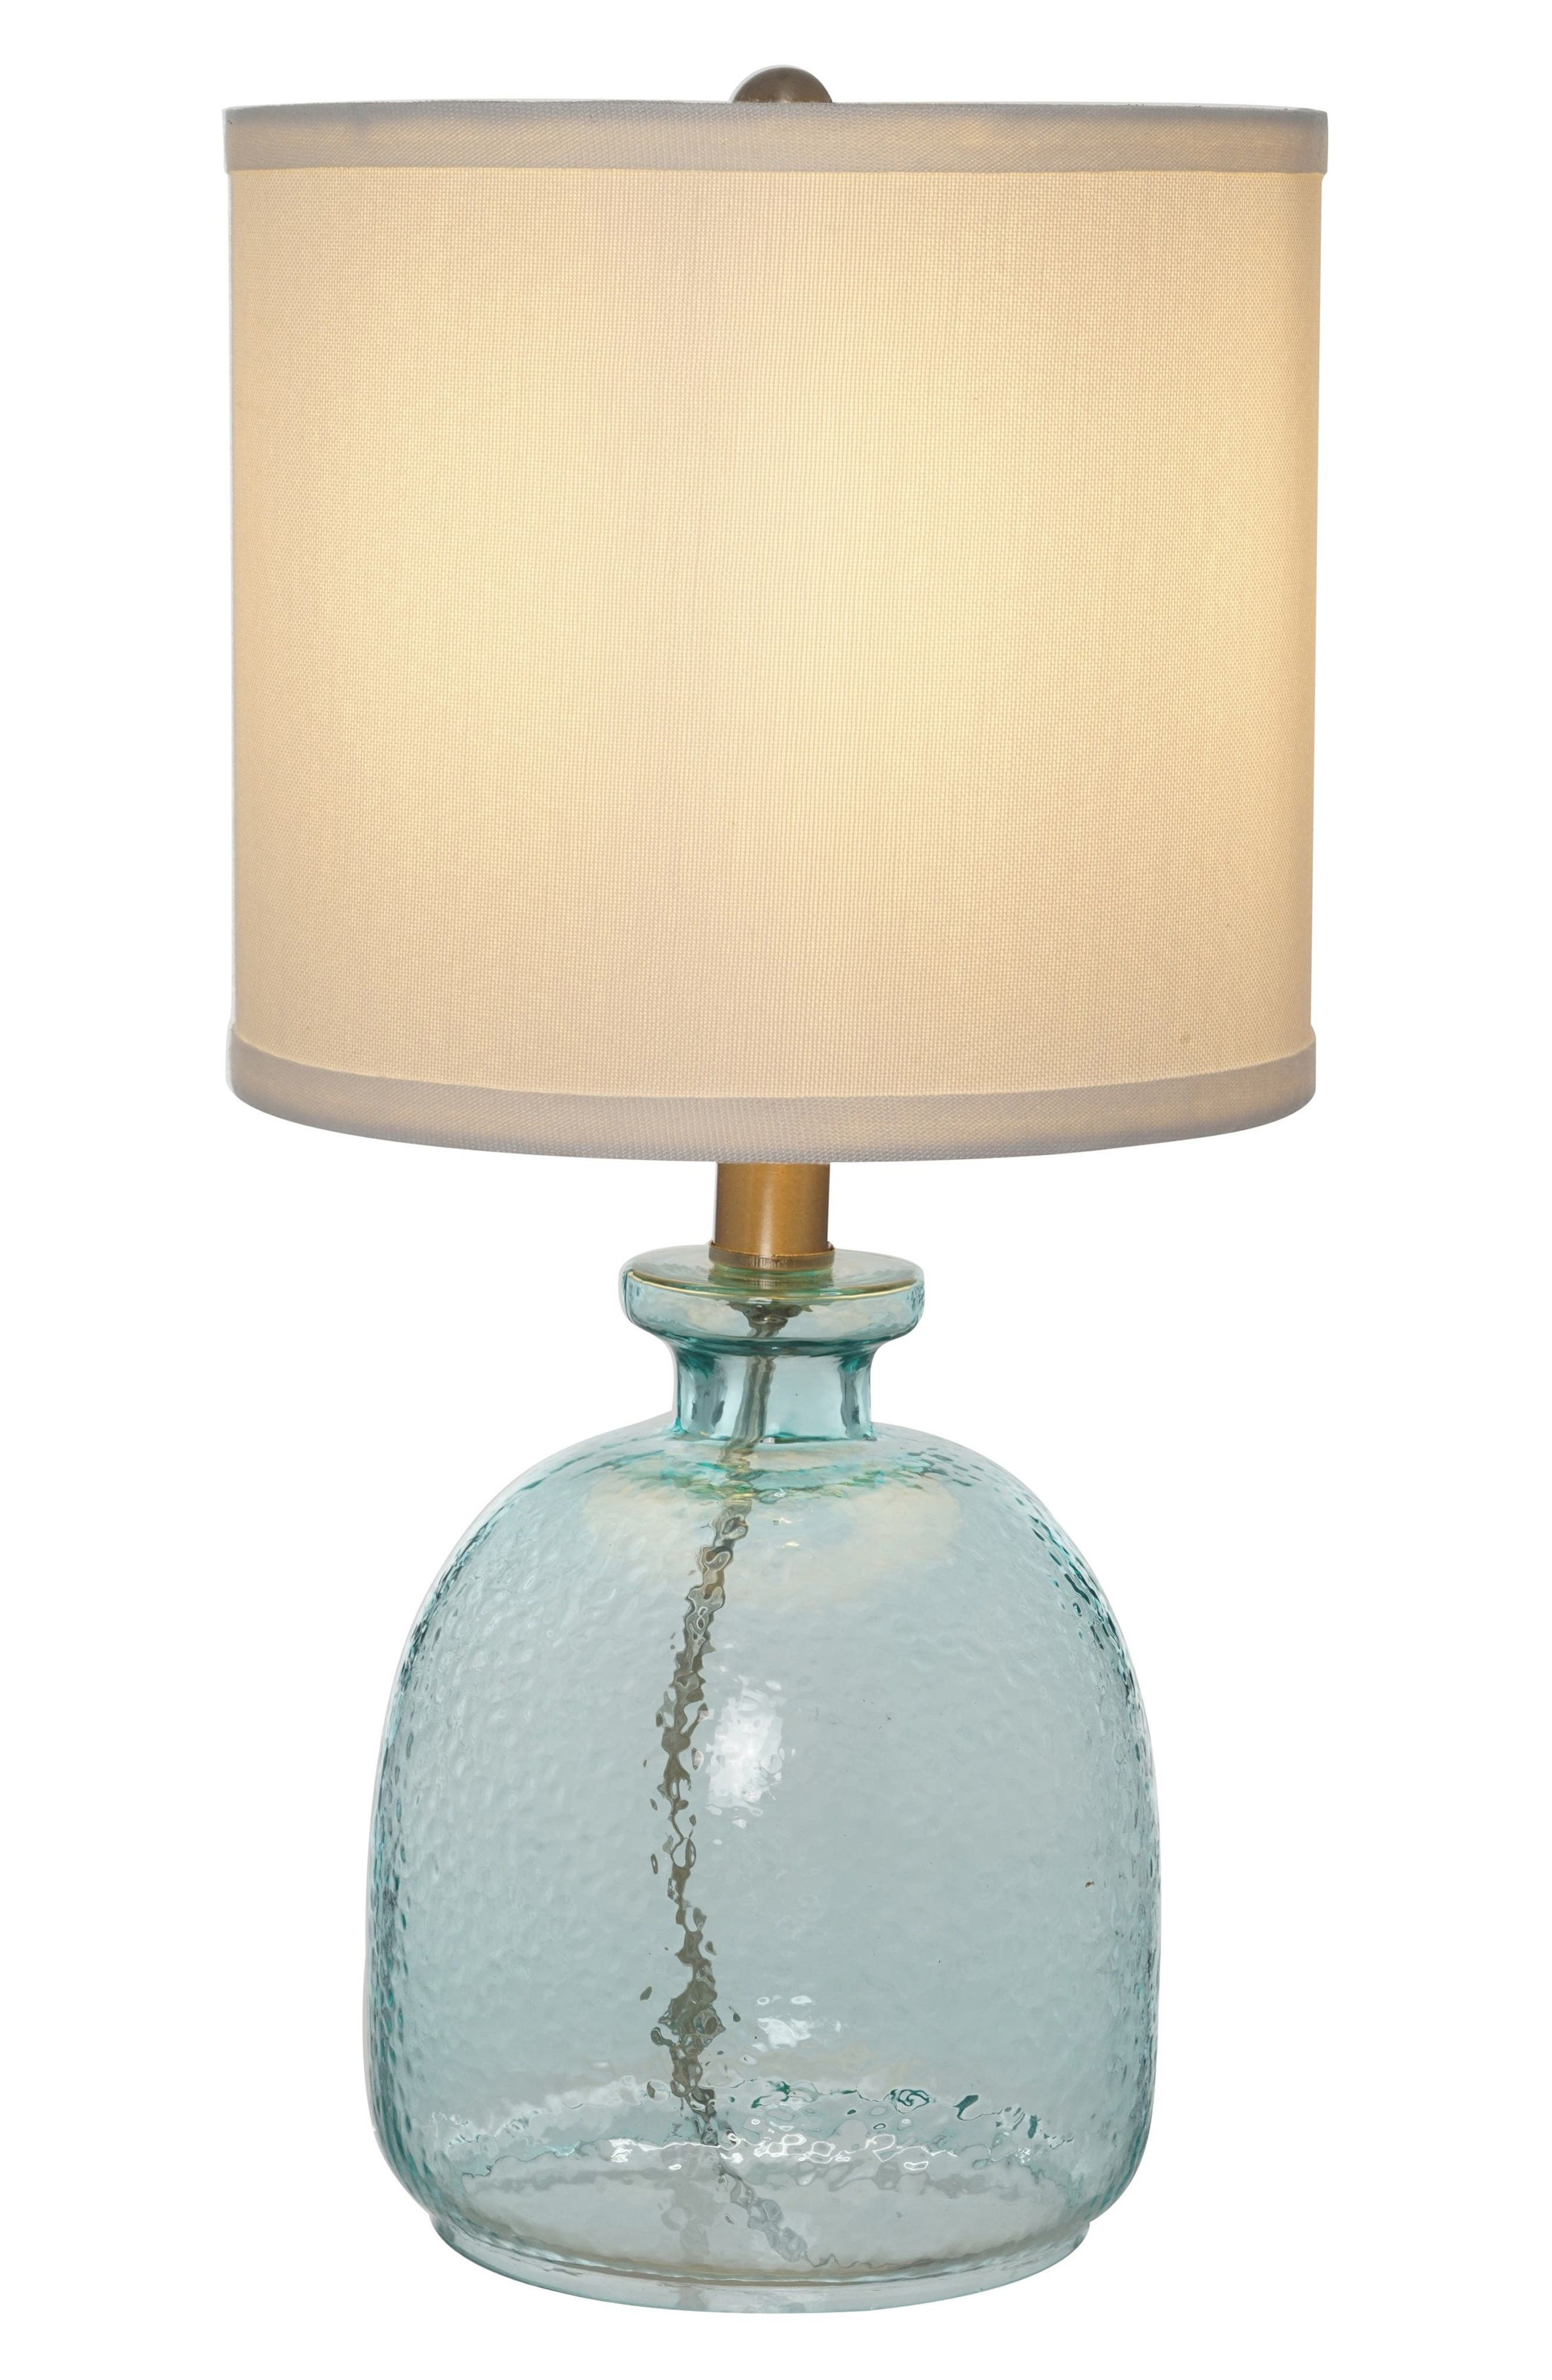 Ocean Glass Accent Lamp,                             Alternate thumbnail 2, color,                             400